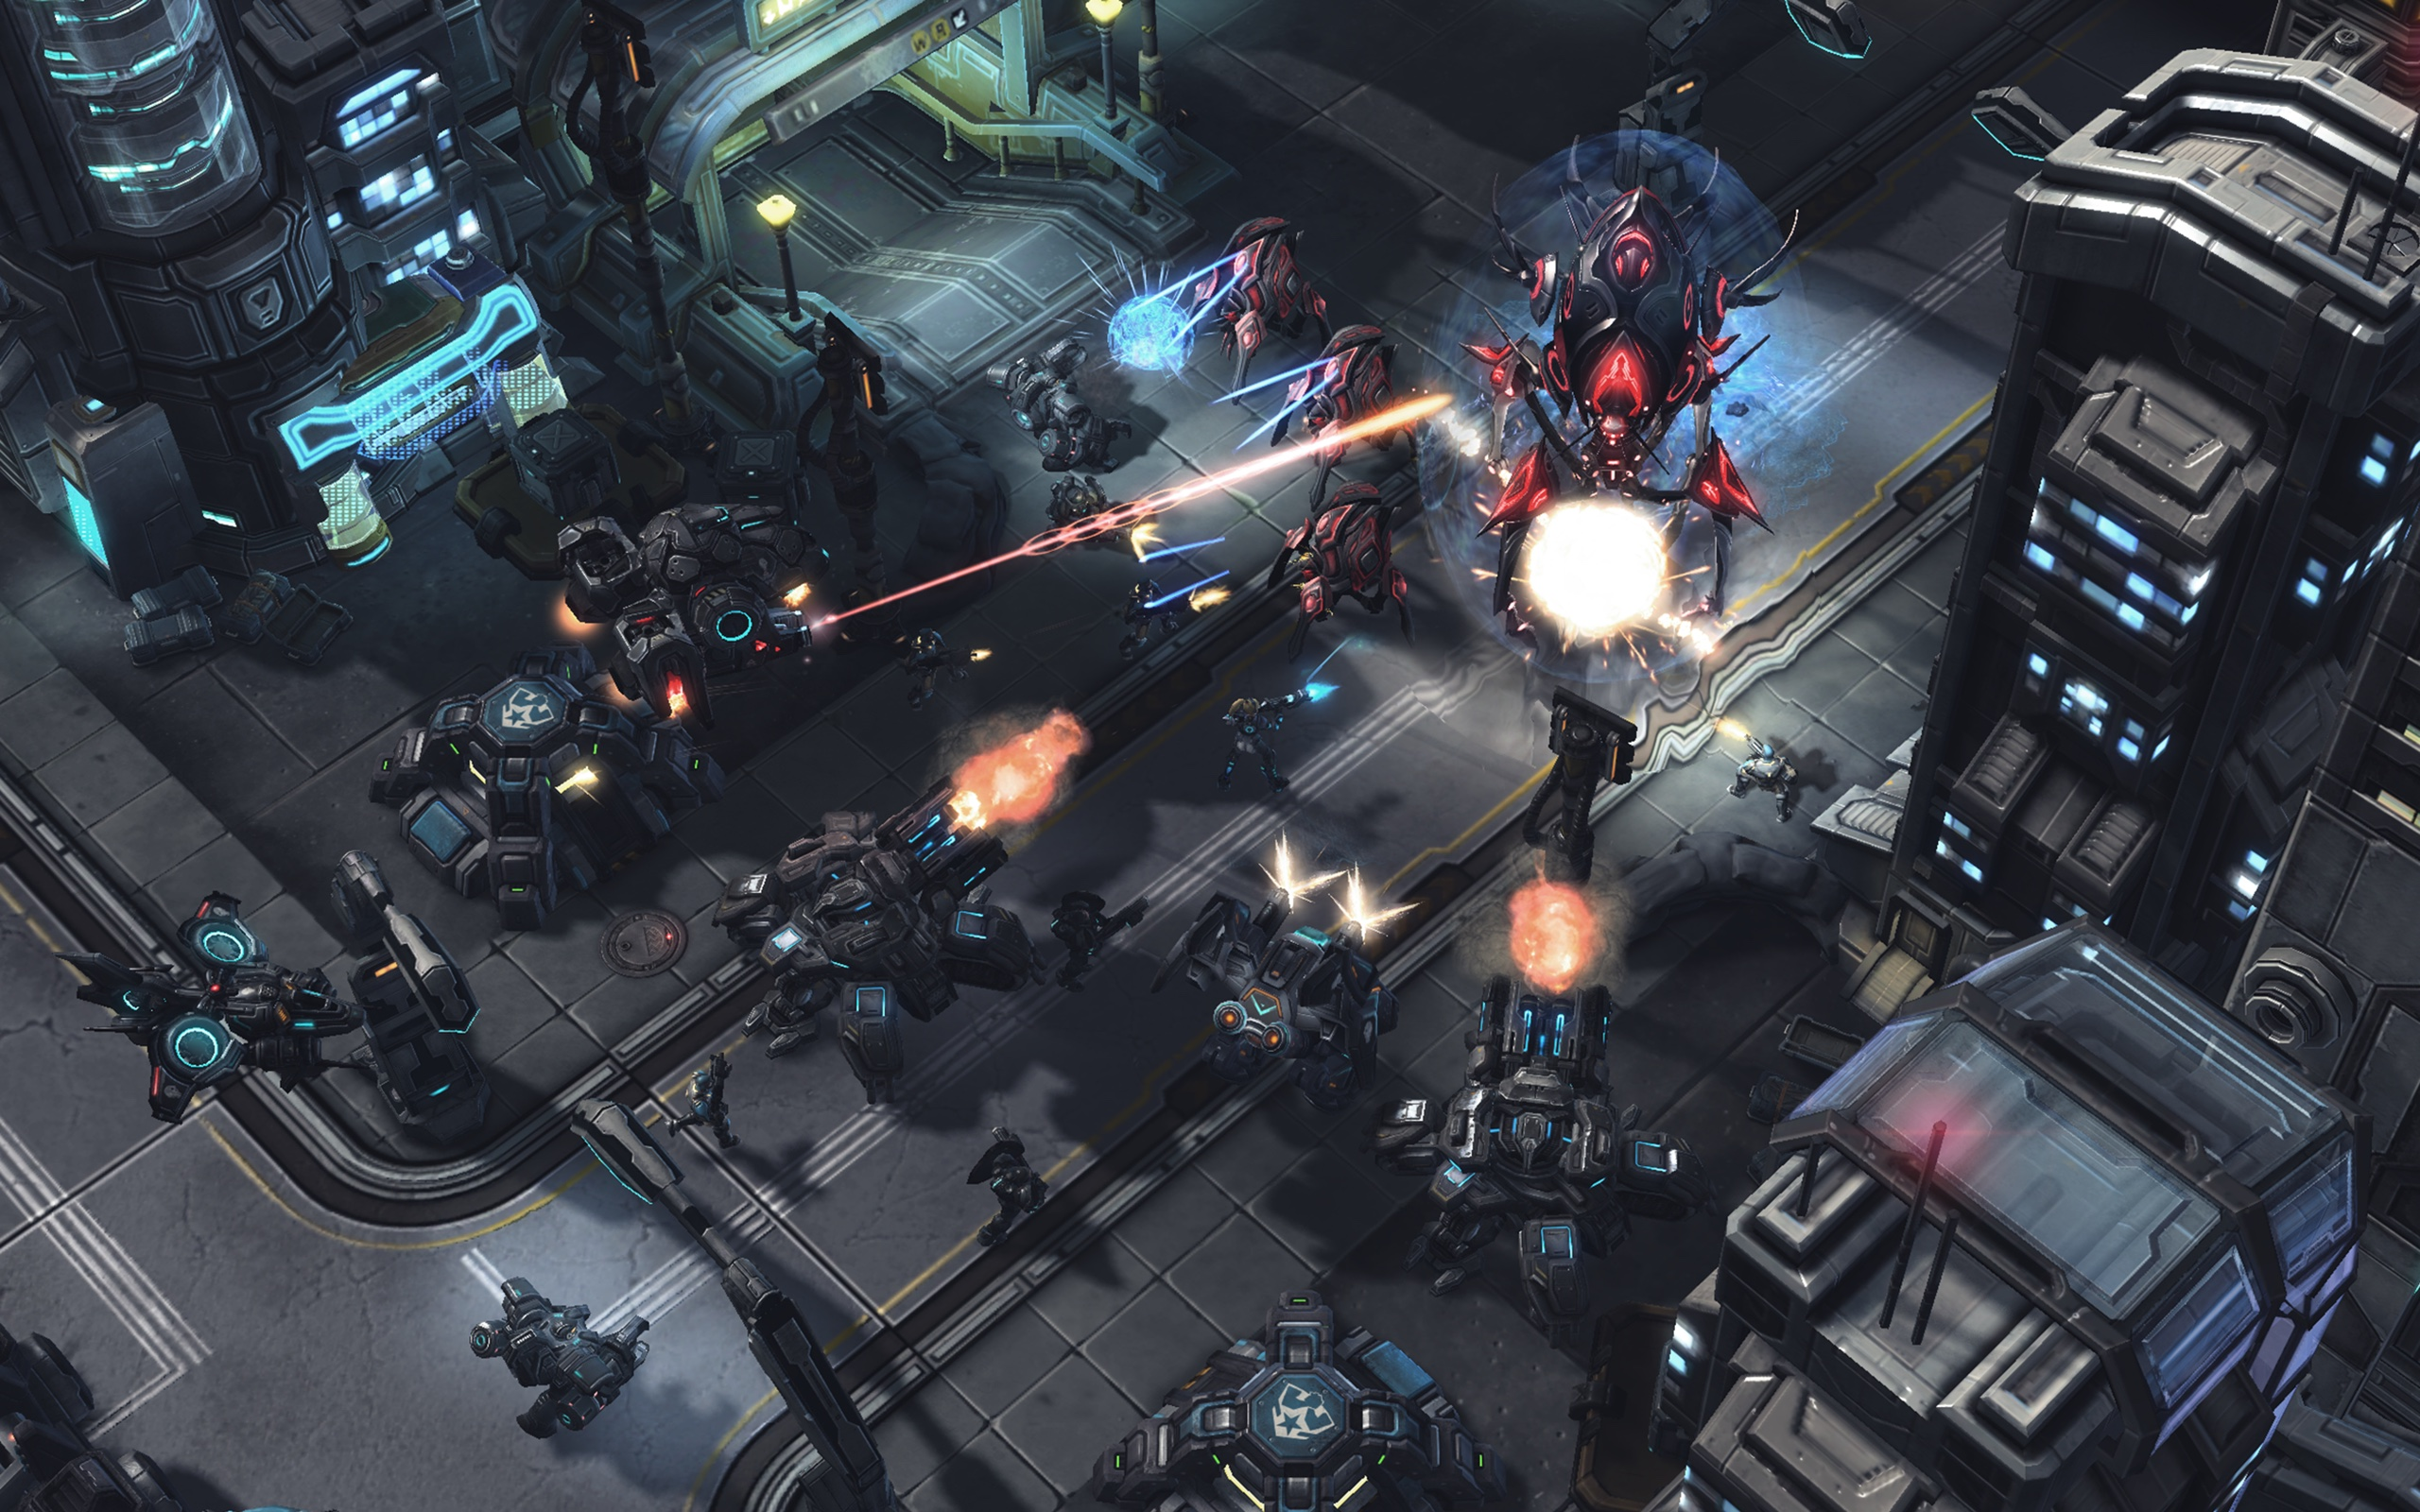 StarCraft II will be free to play starting November 14